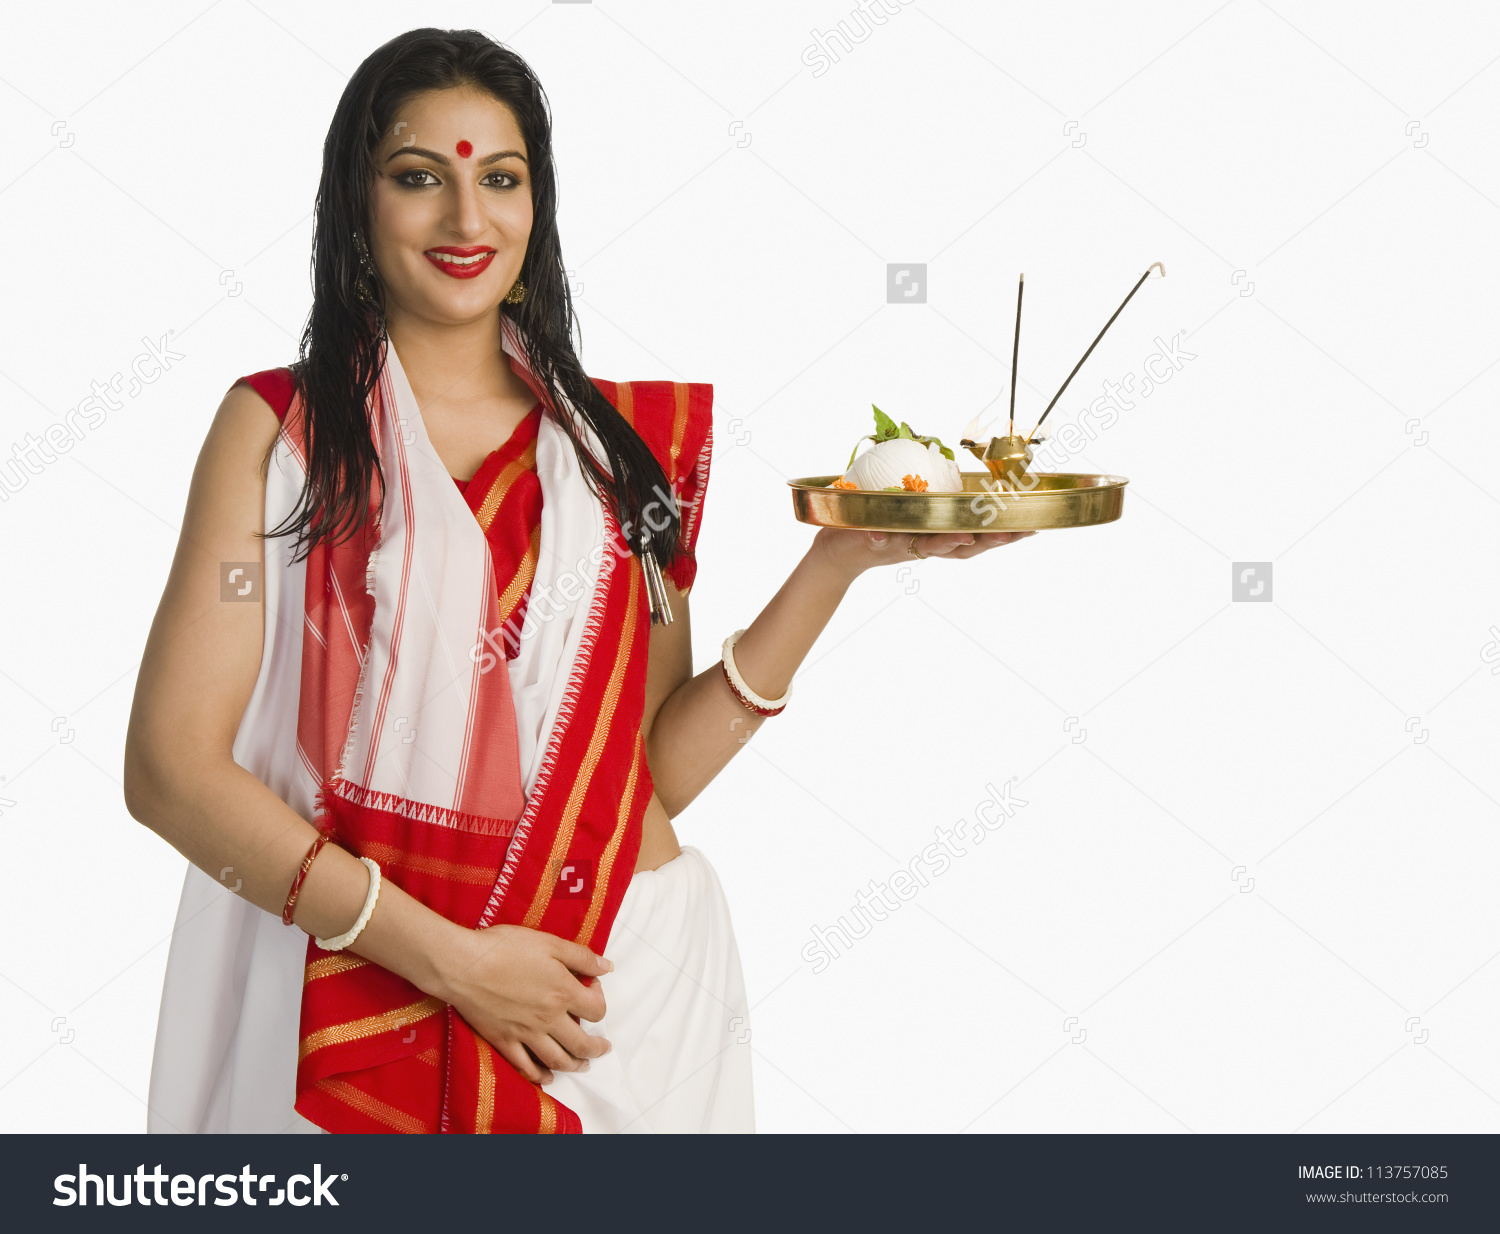 Woman Bengali Sari Holding Pooja Thali Stock Photo 113757085.